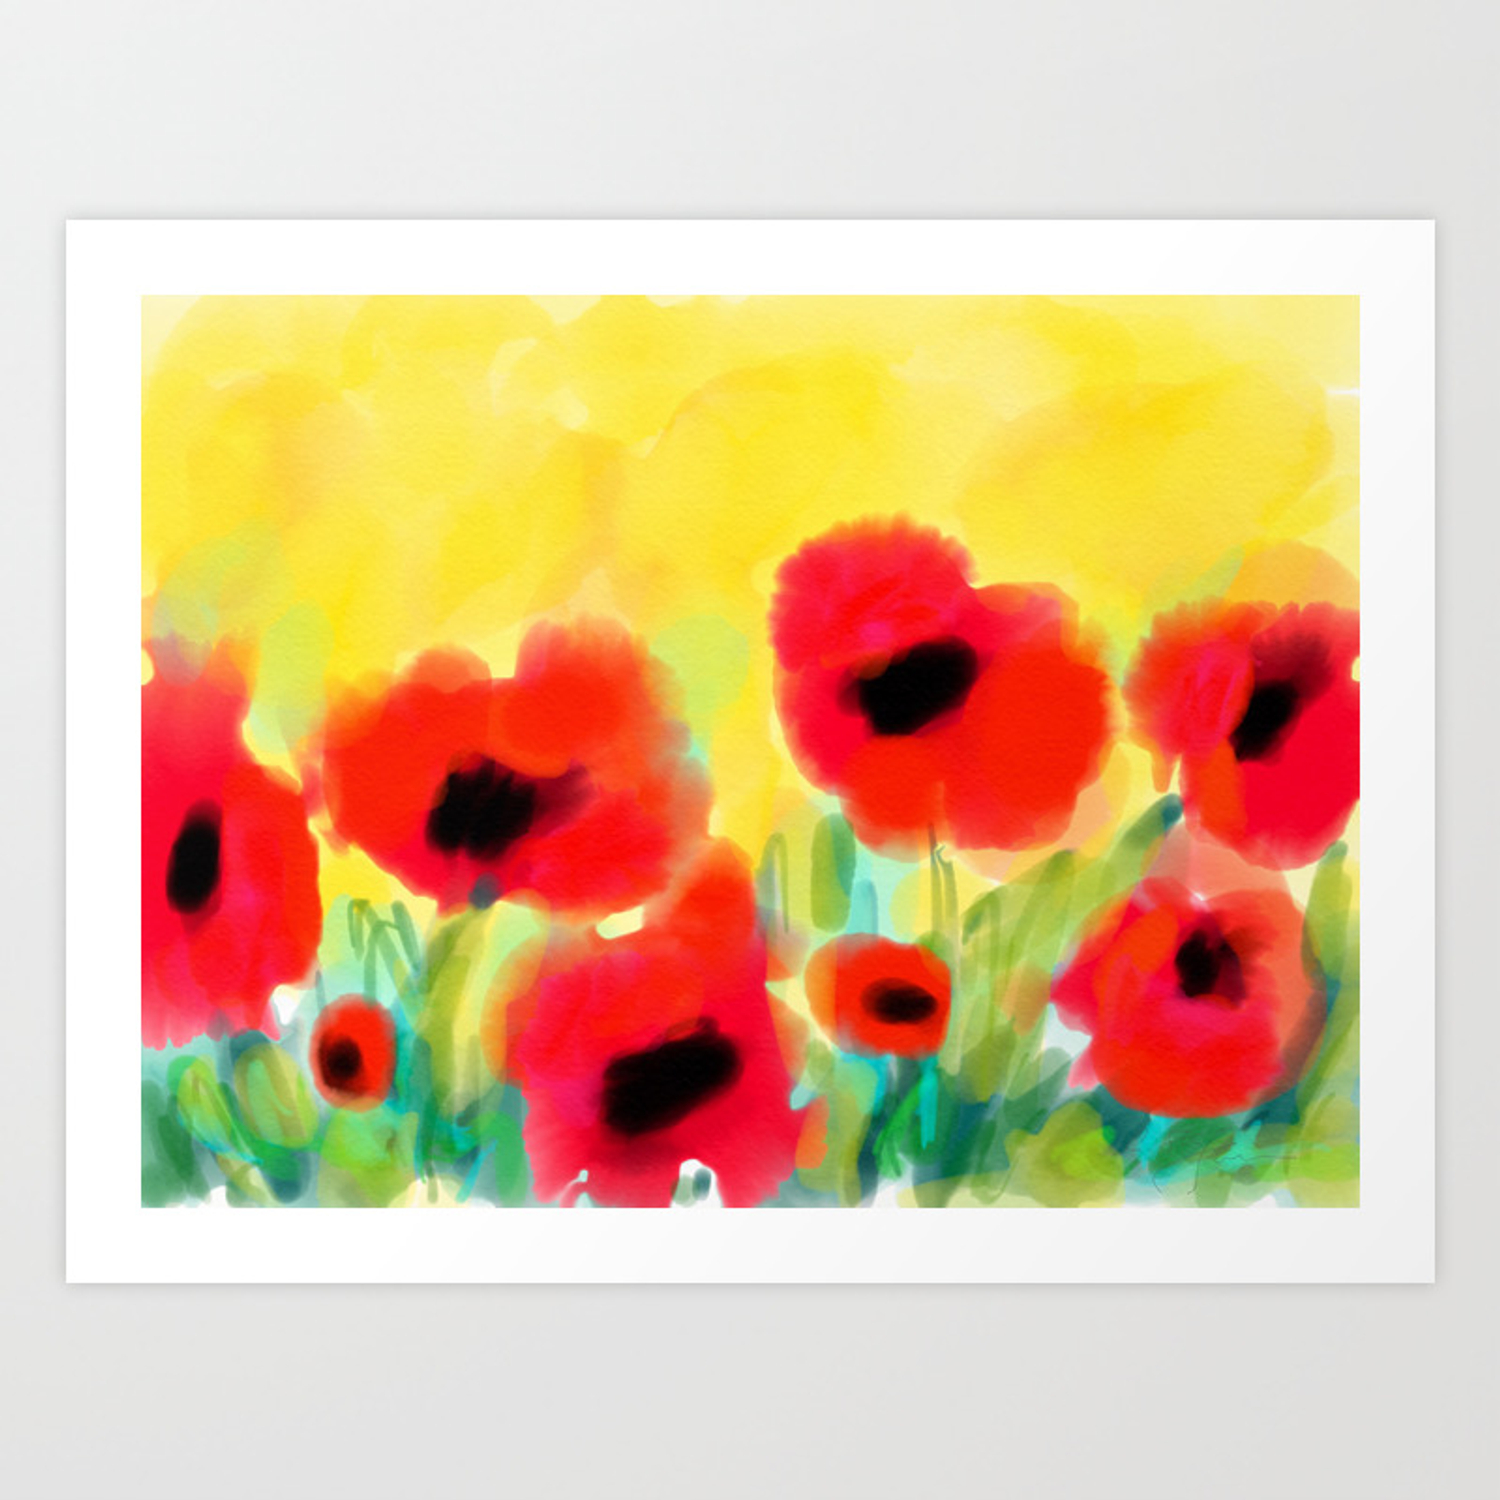 Red Poppies Original Design By Artstudio29 Red Flowers On Yellow Background Art Print By Artstudio29 Society6